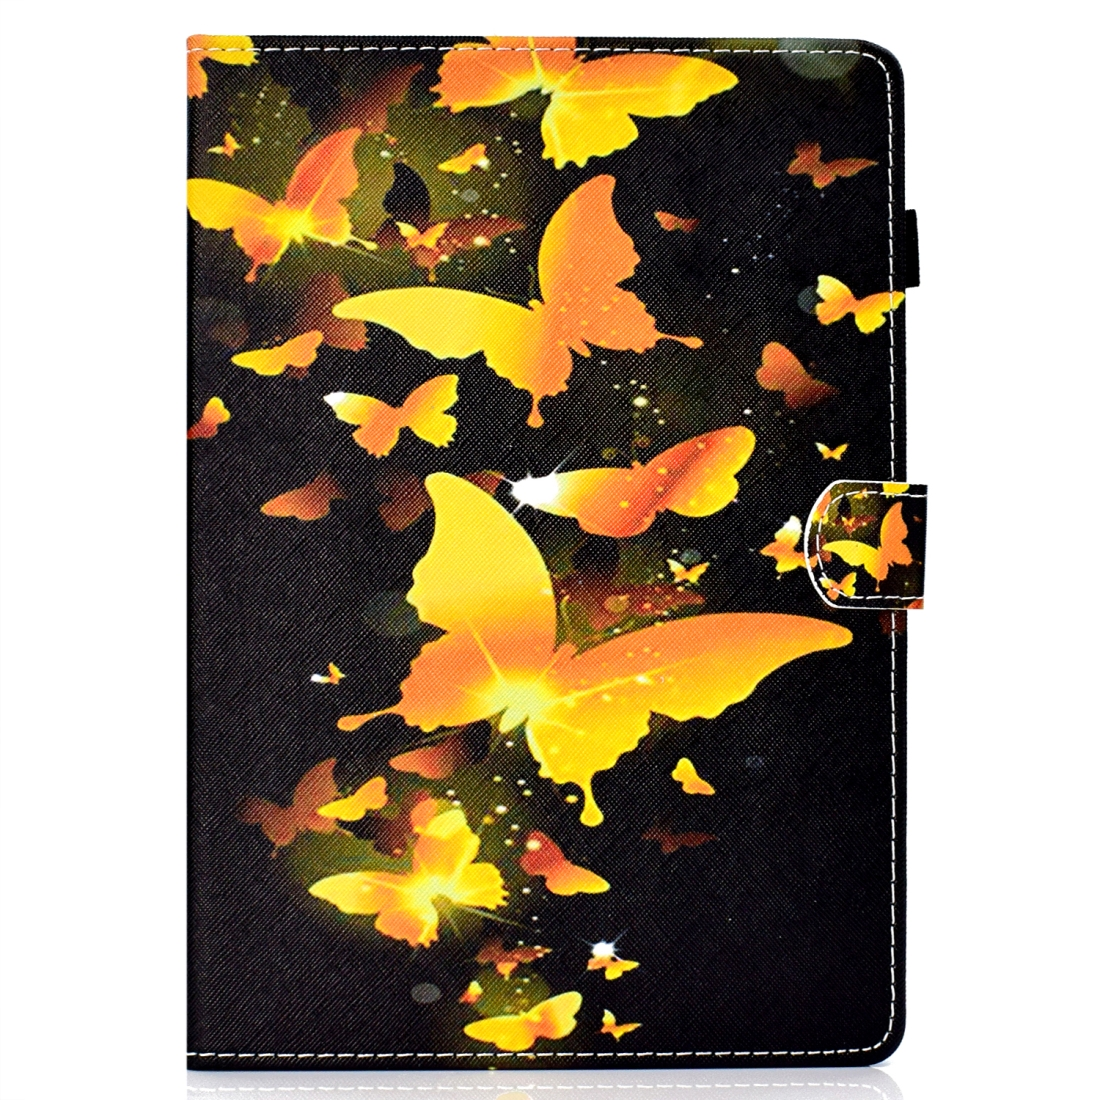 Artsy Leather iPad Air 3 Case (10.5 Inch) 2017/2019 Artsy Design & Auto Sleep Function (Butterfly)